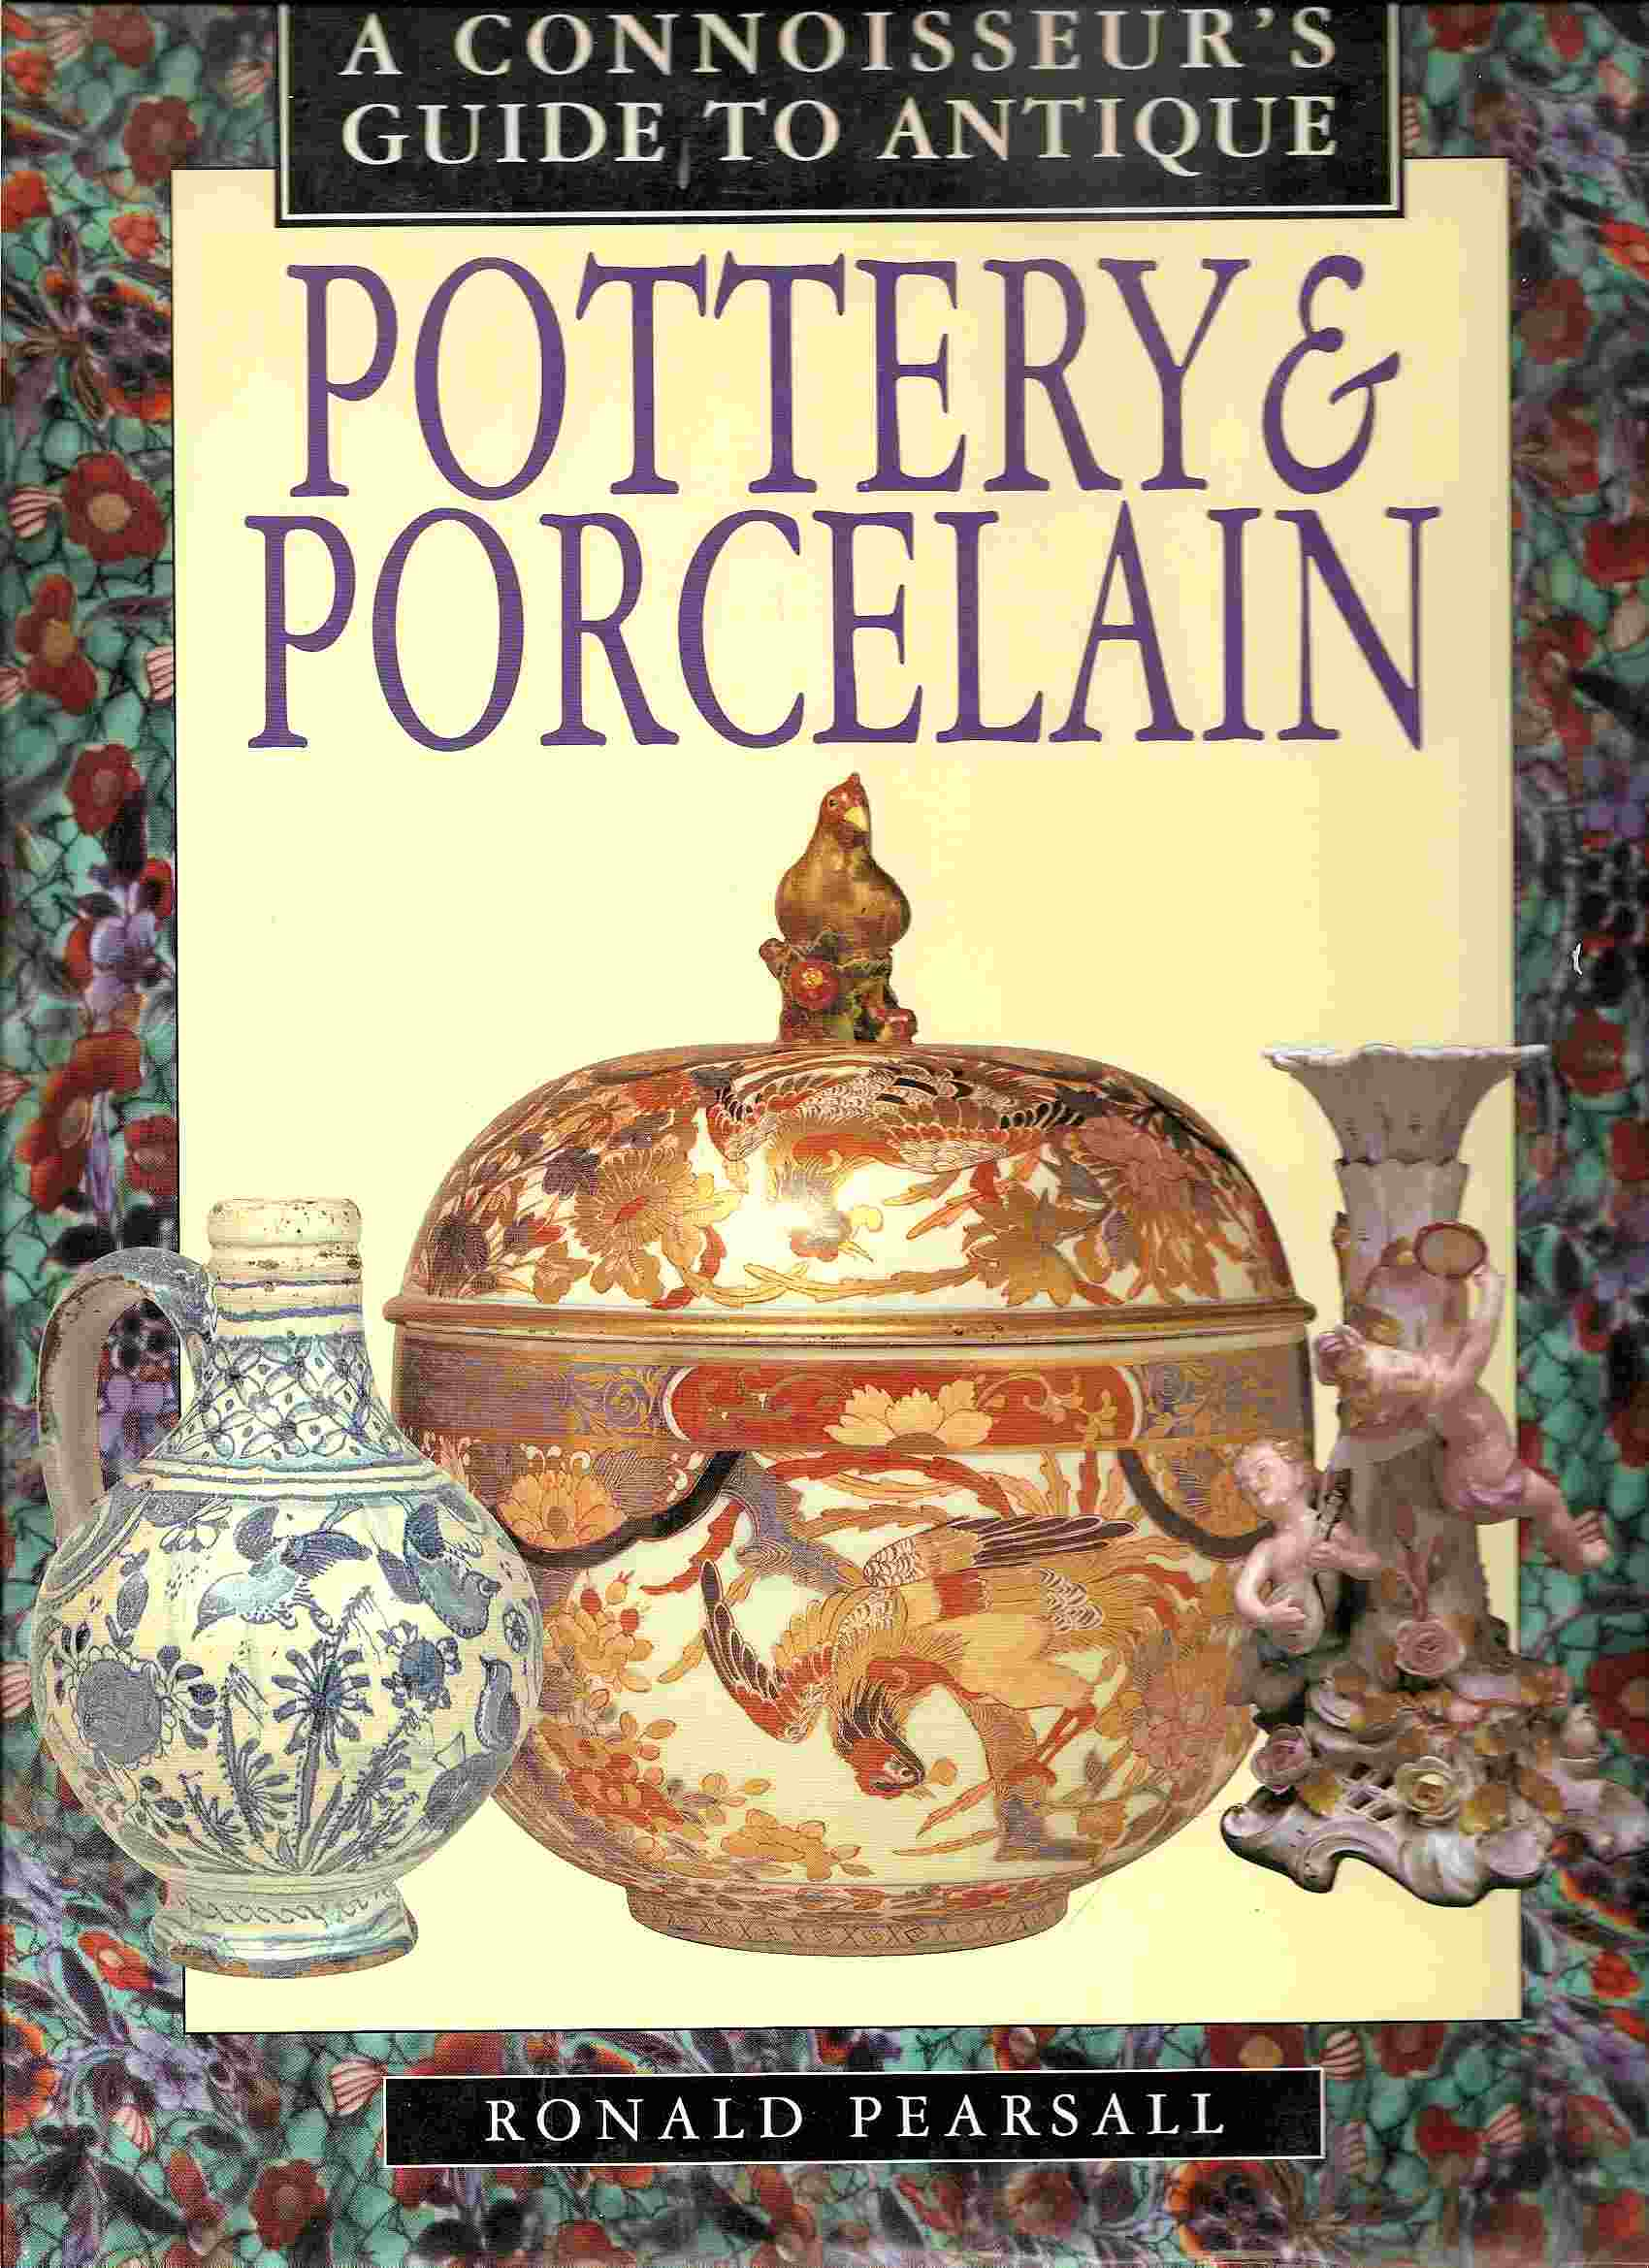 Image for CONNOISSEUR'S GUIDE TO ANTIQUE POTTERY & PORCELAIN